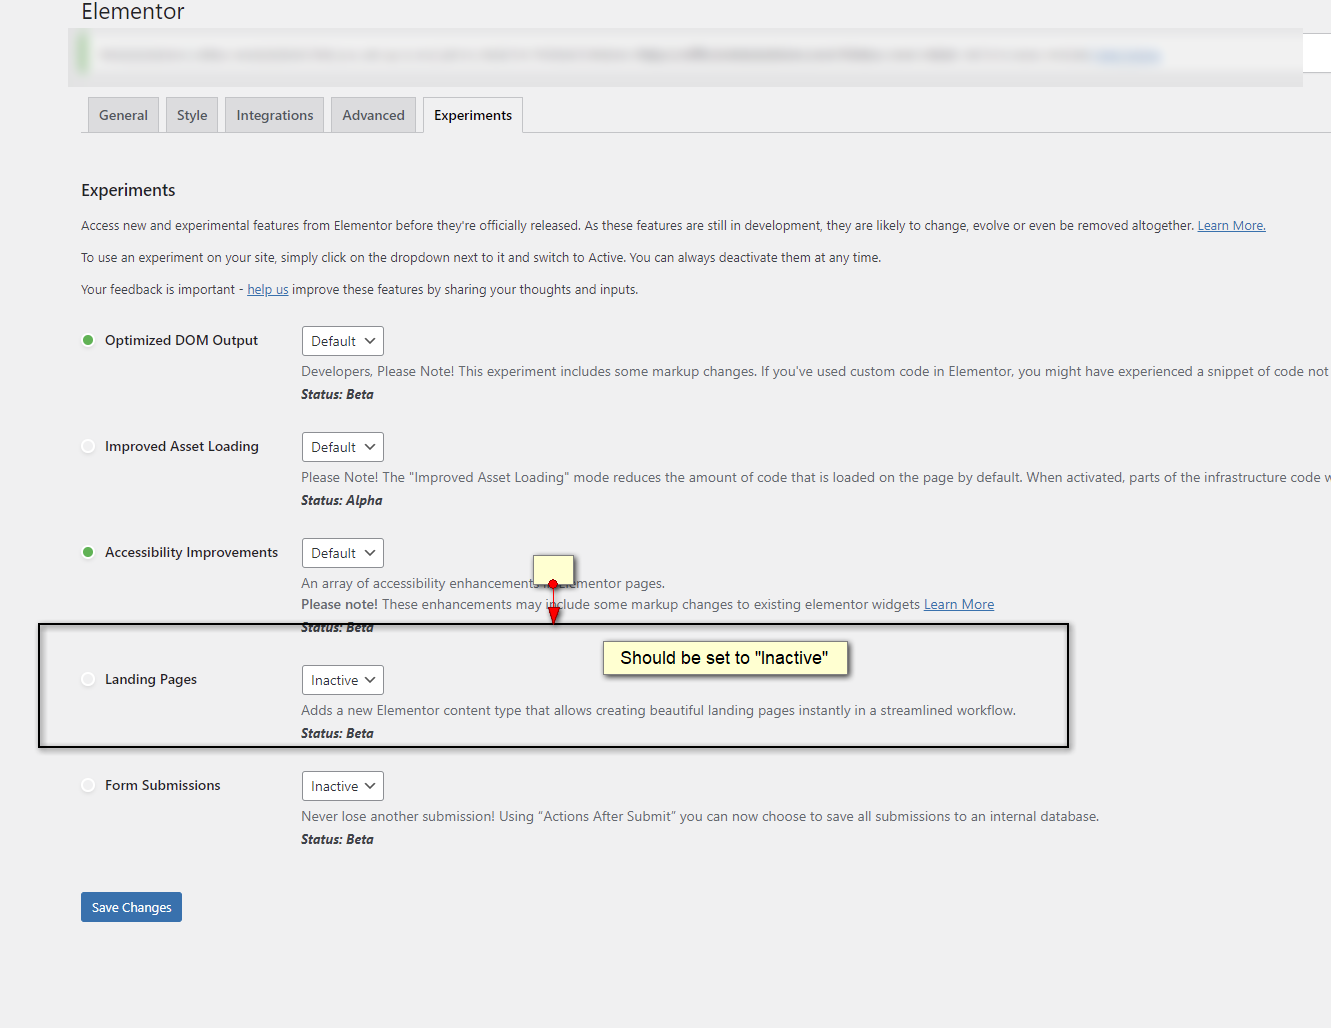 elementor landing pages experiment should be set to inactive